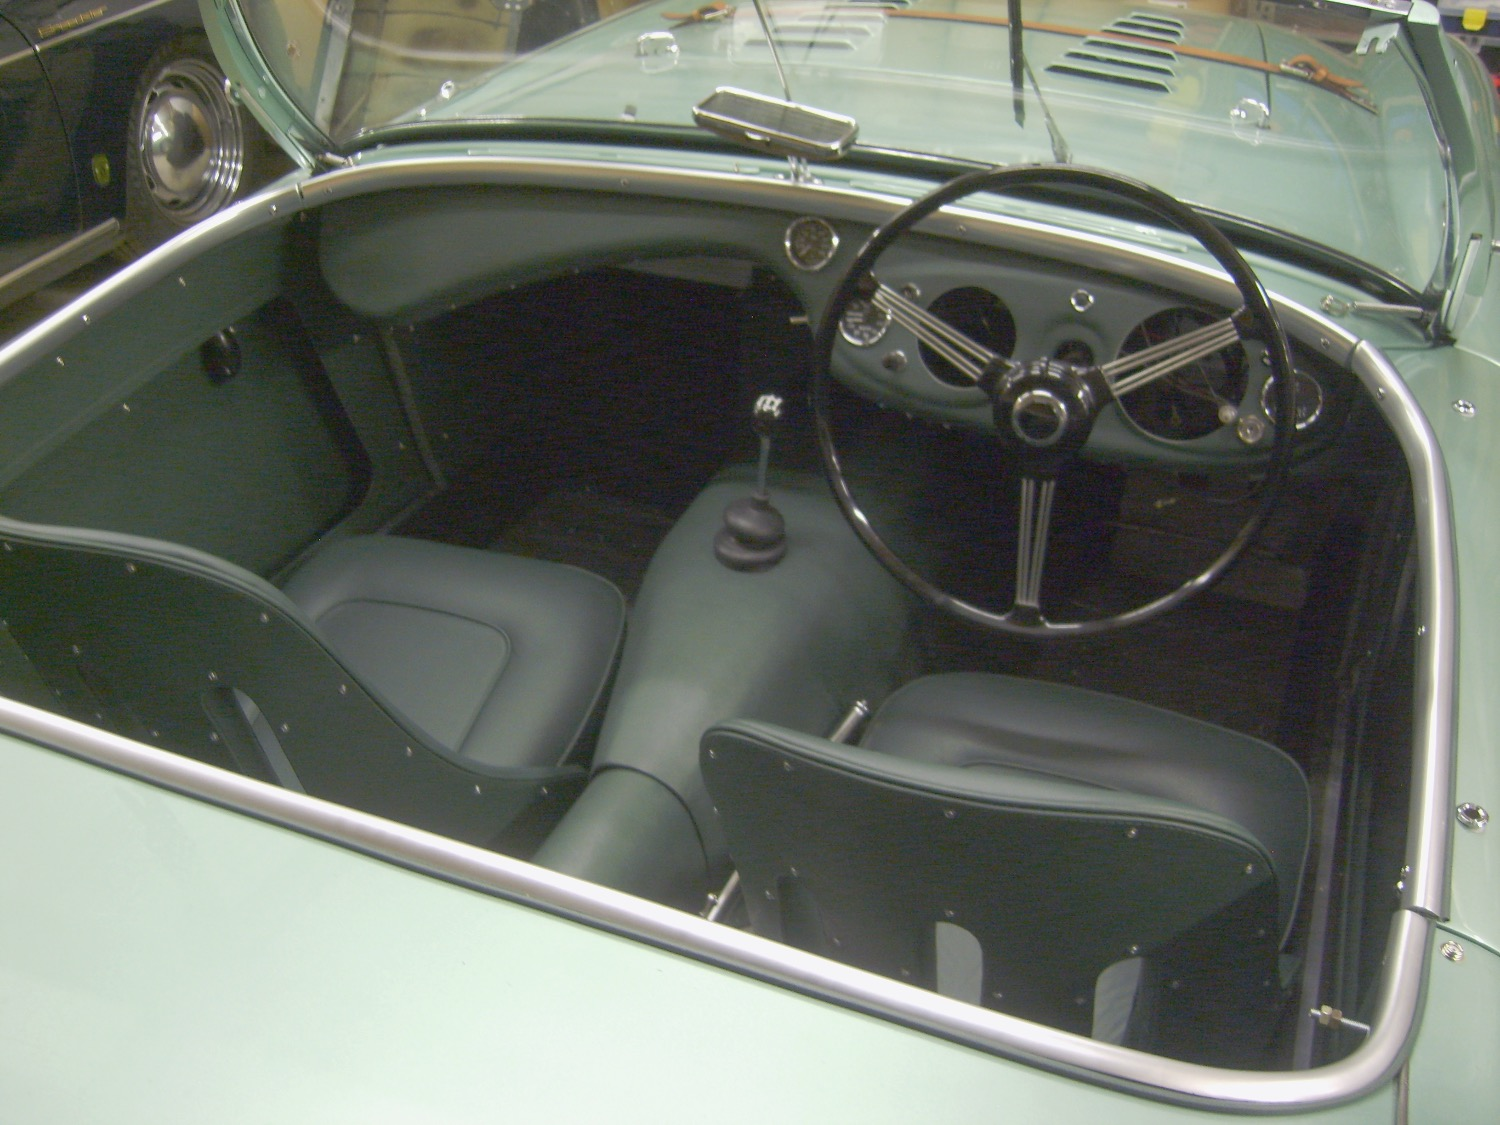 Austin Healey 100/4 full interior